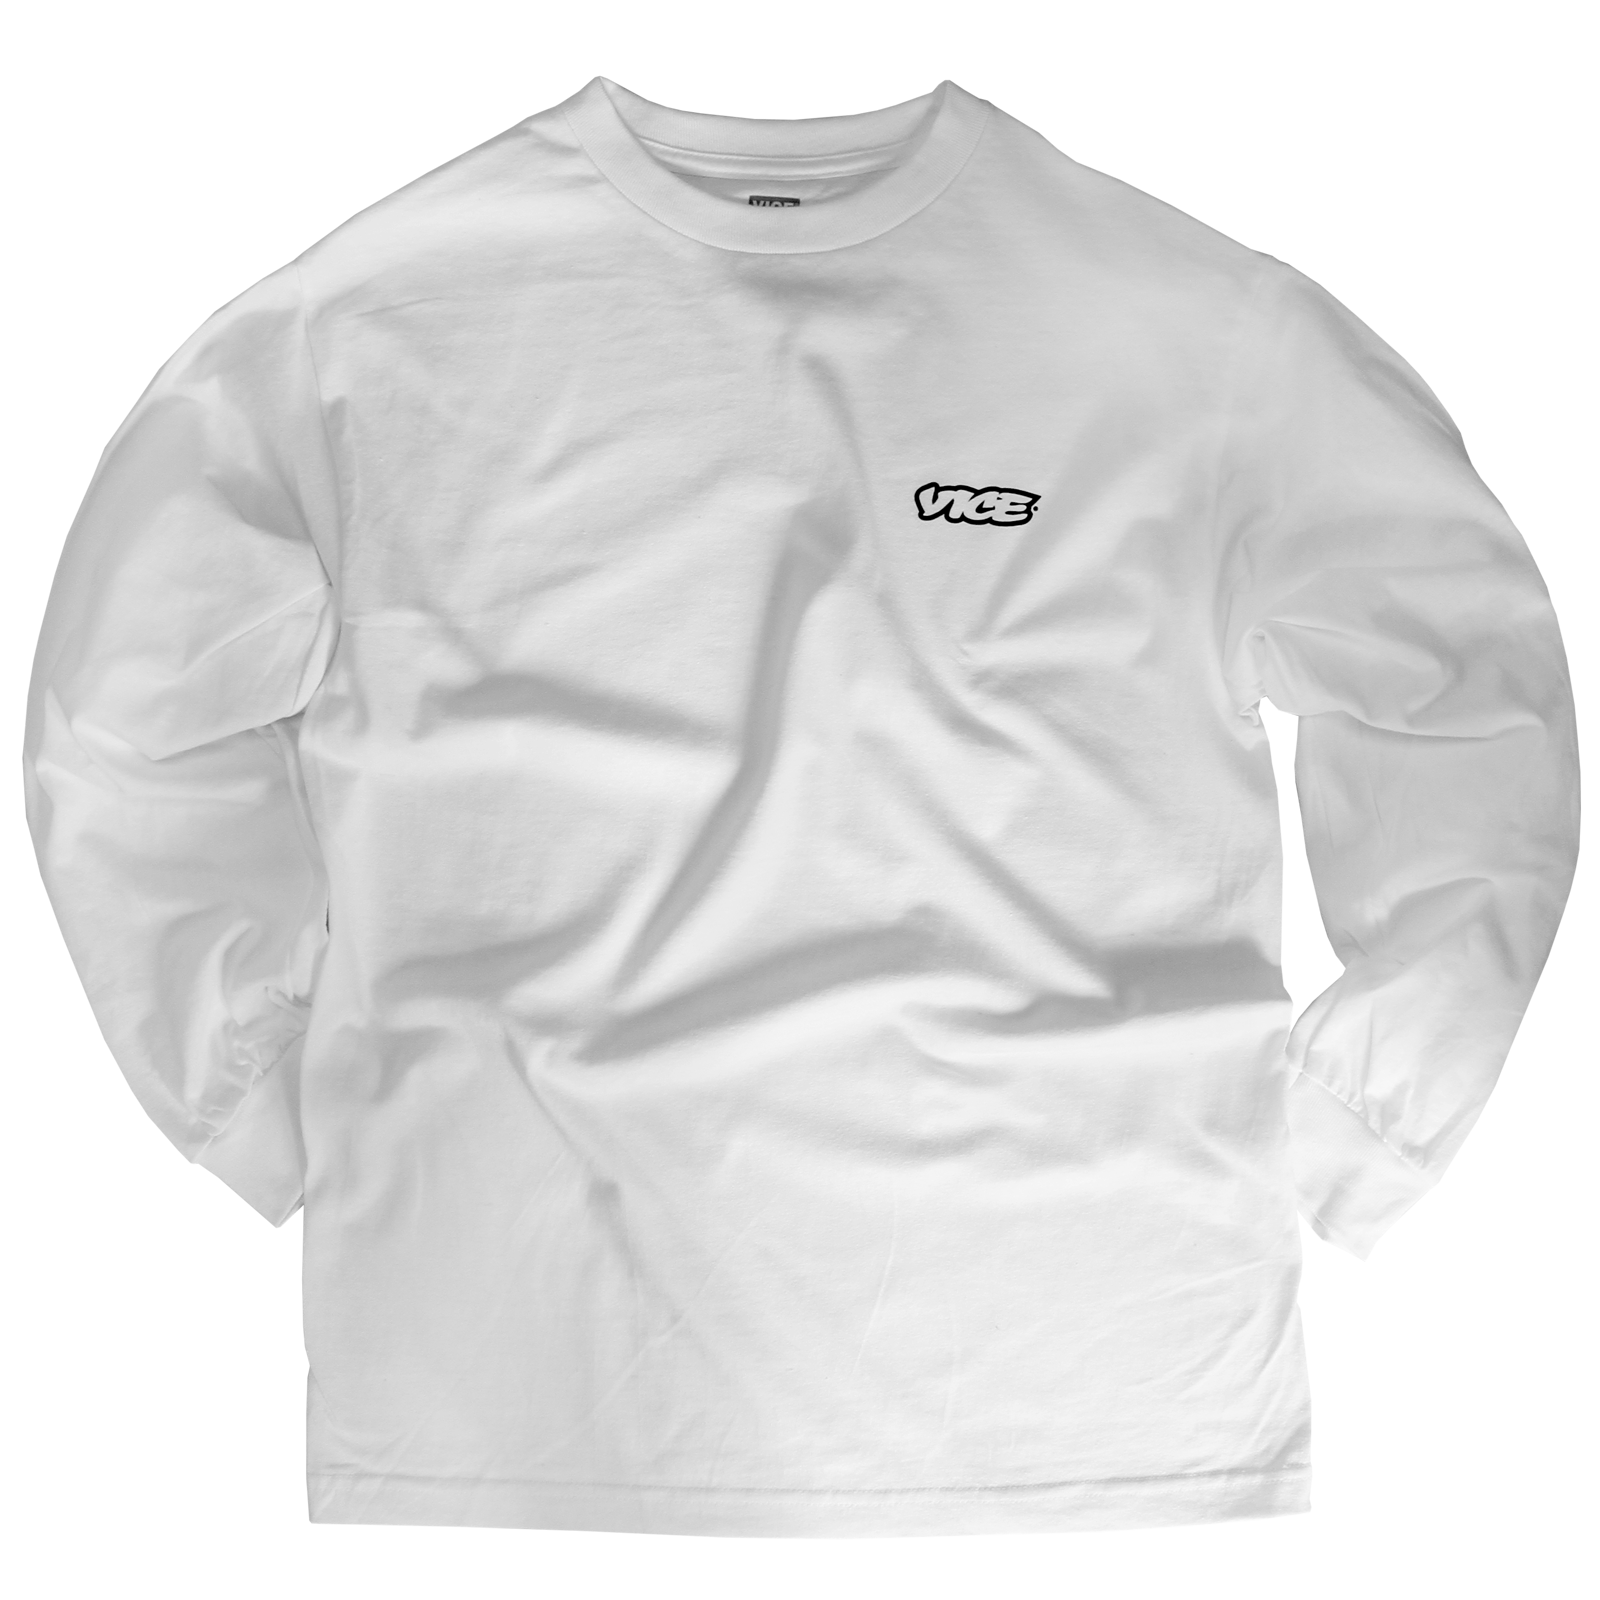 VICE Classic White Long-Sleeve T-Shirt